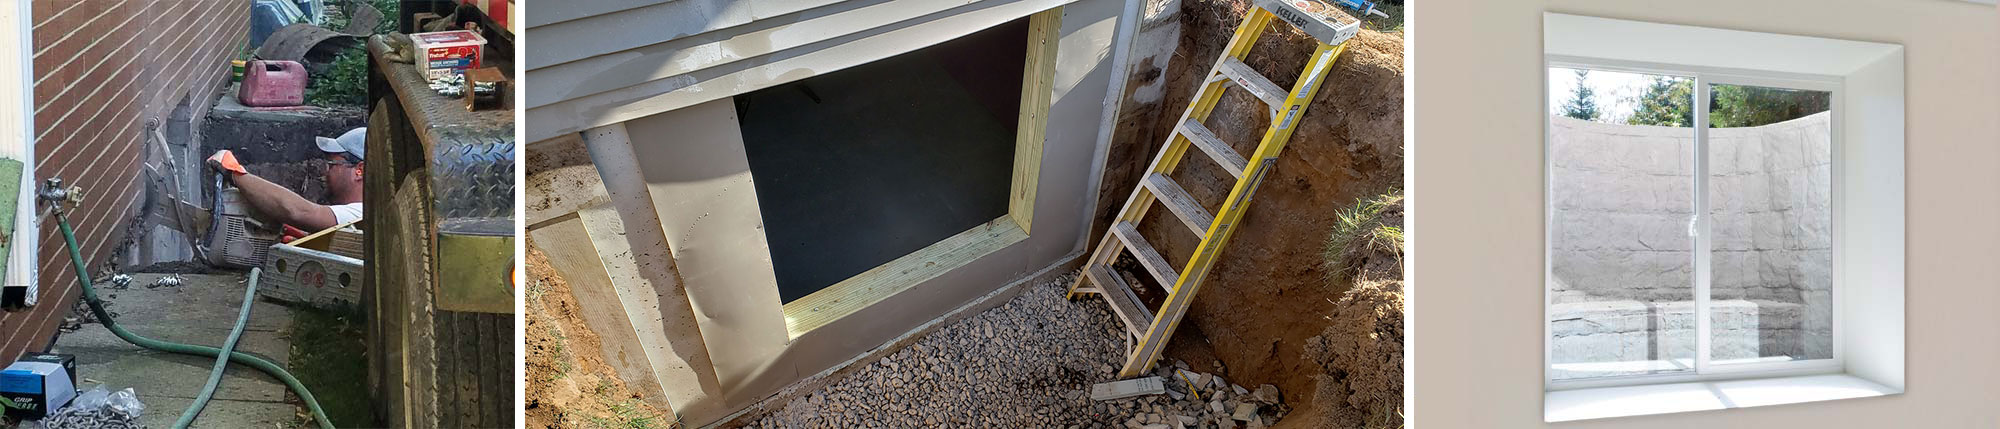 Basement Egress Window Installation and Concrete Cutting in Green Bay and Appleton, WI